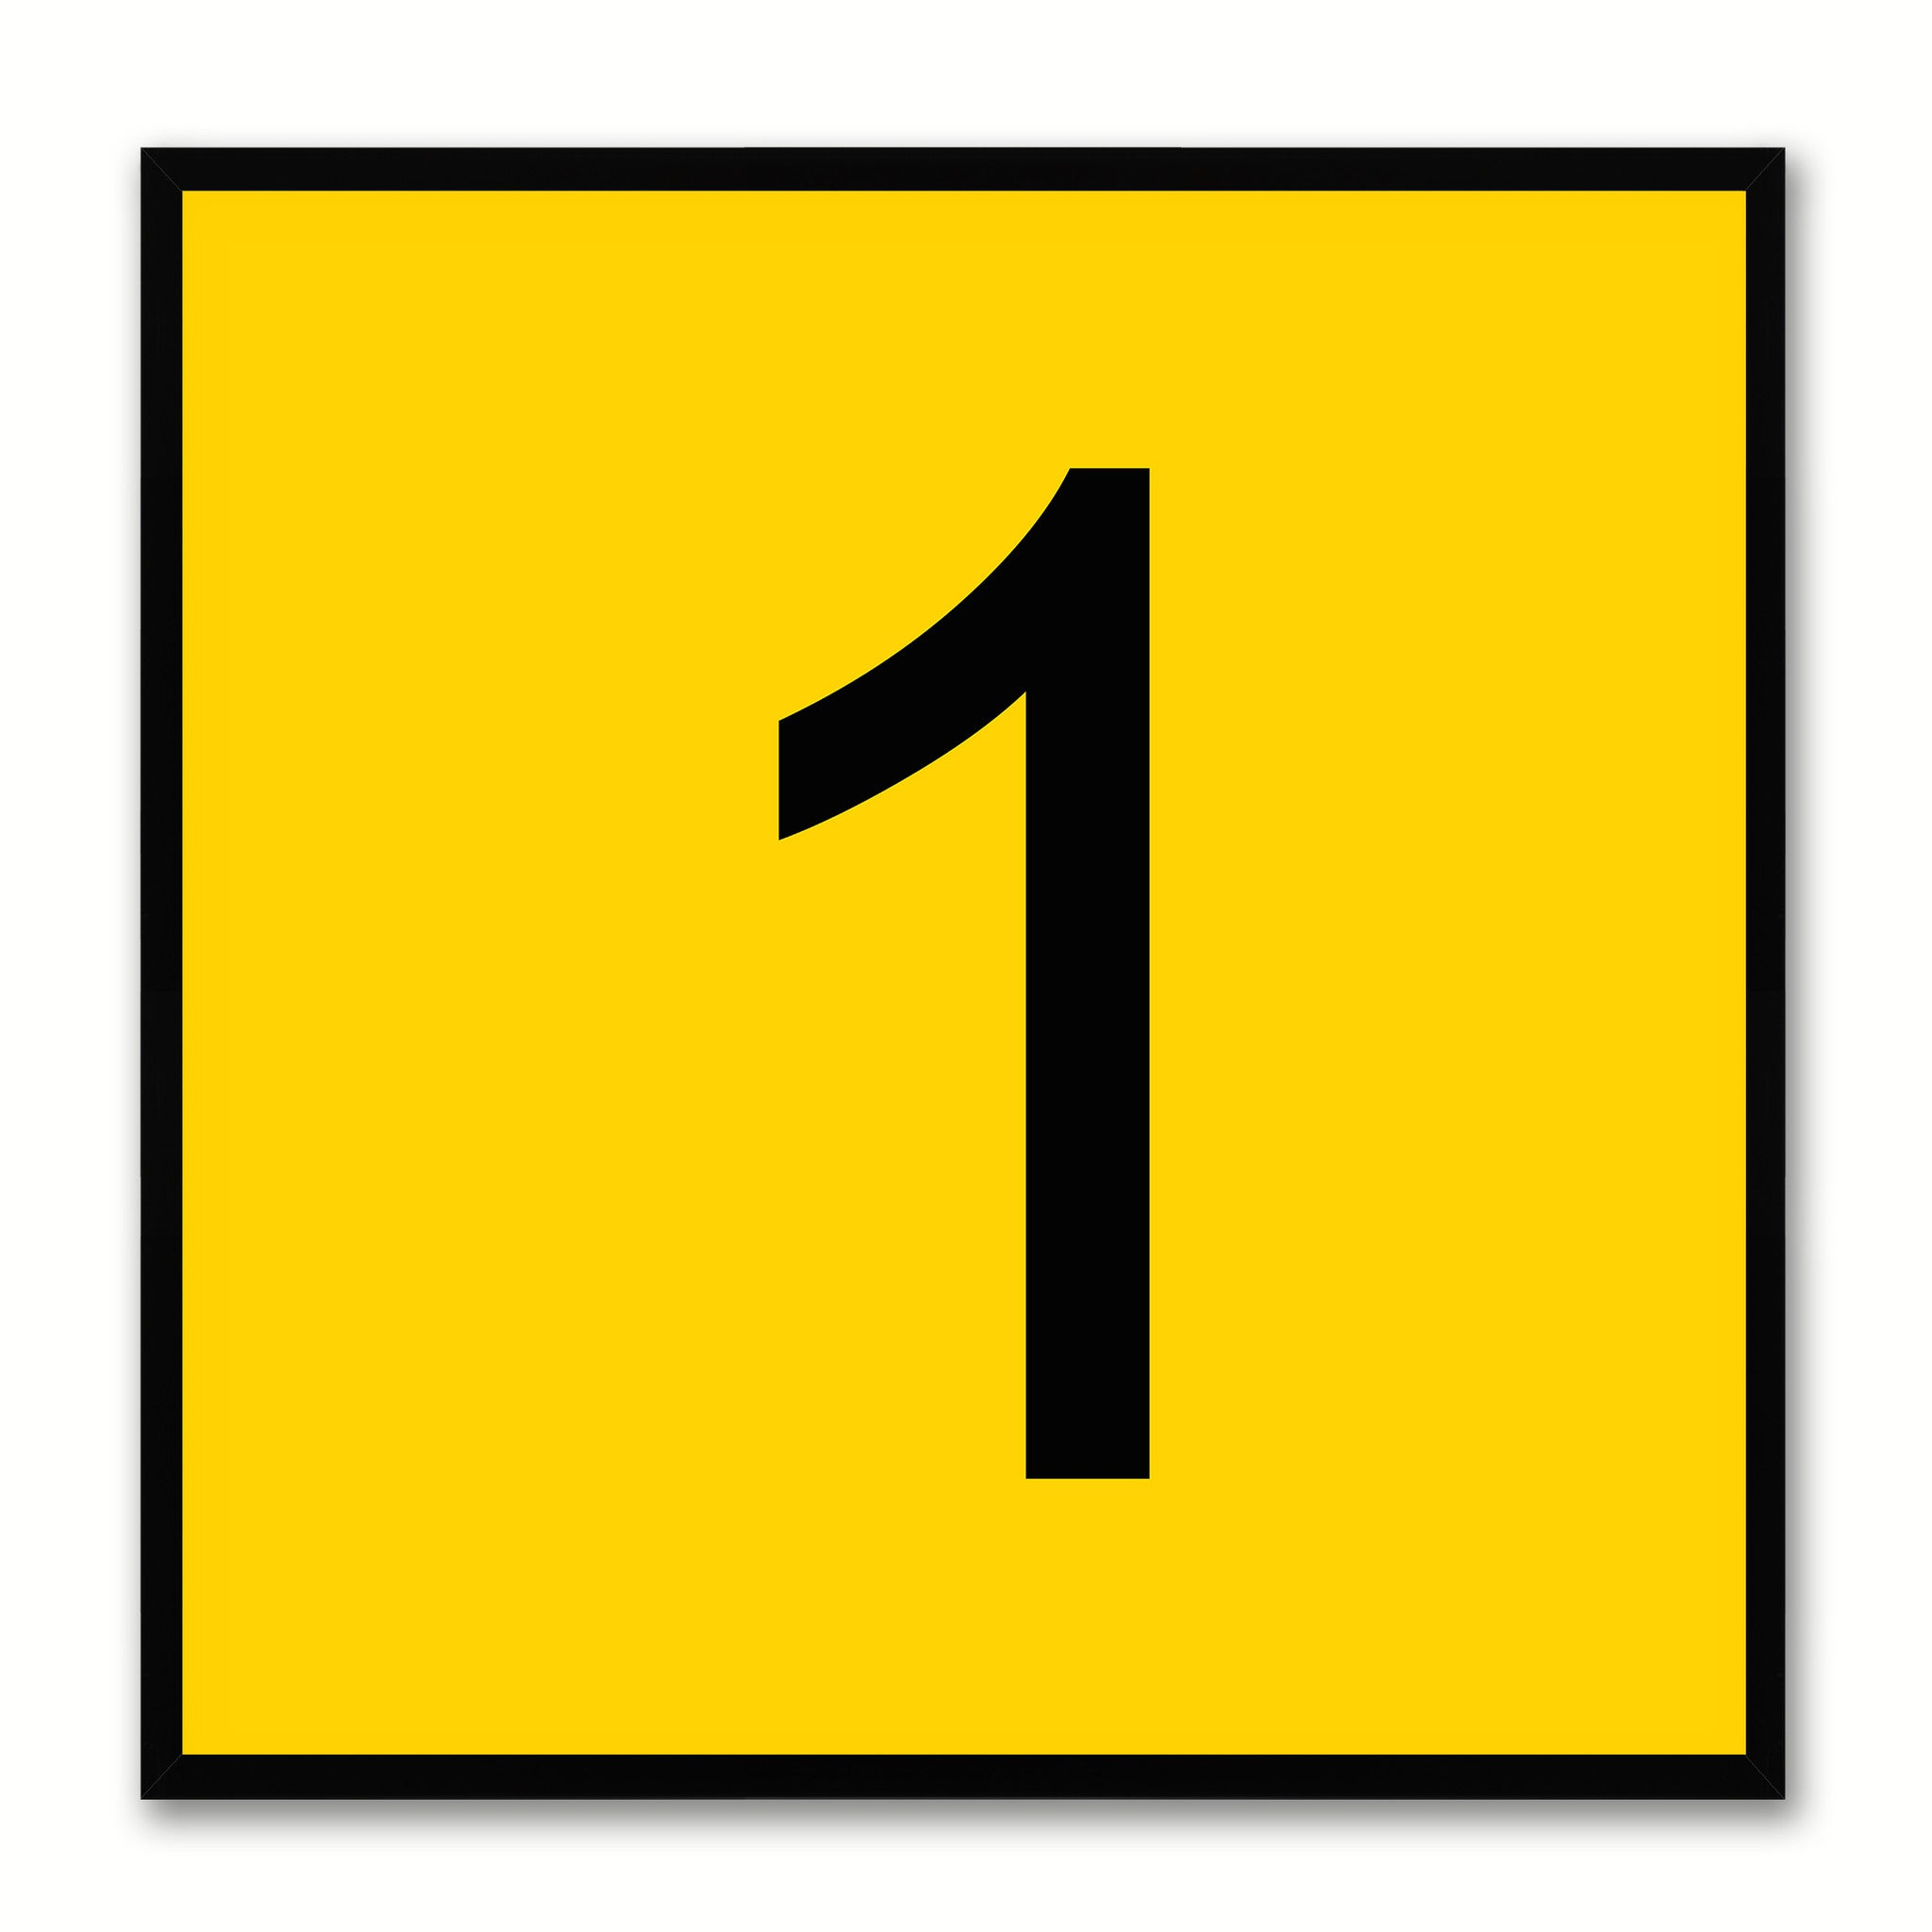 Number 1 Yellow Canvas Print Black Frame Kids Bedroom Wall Décor Home Art